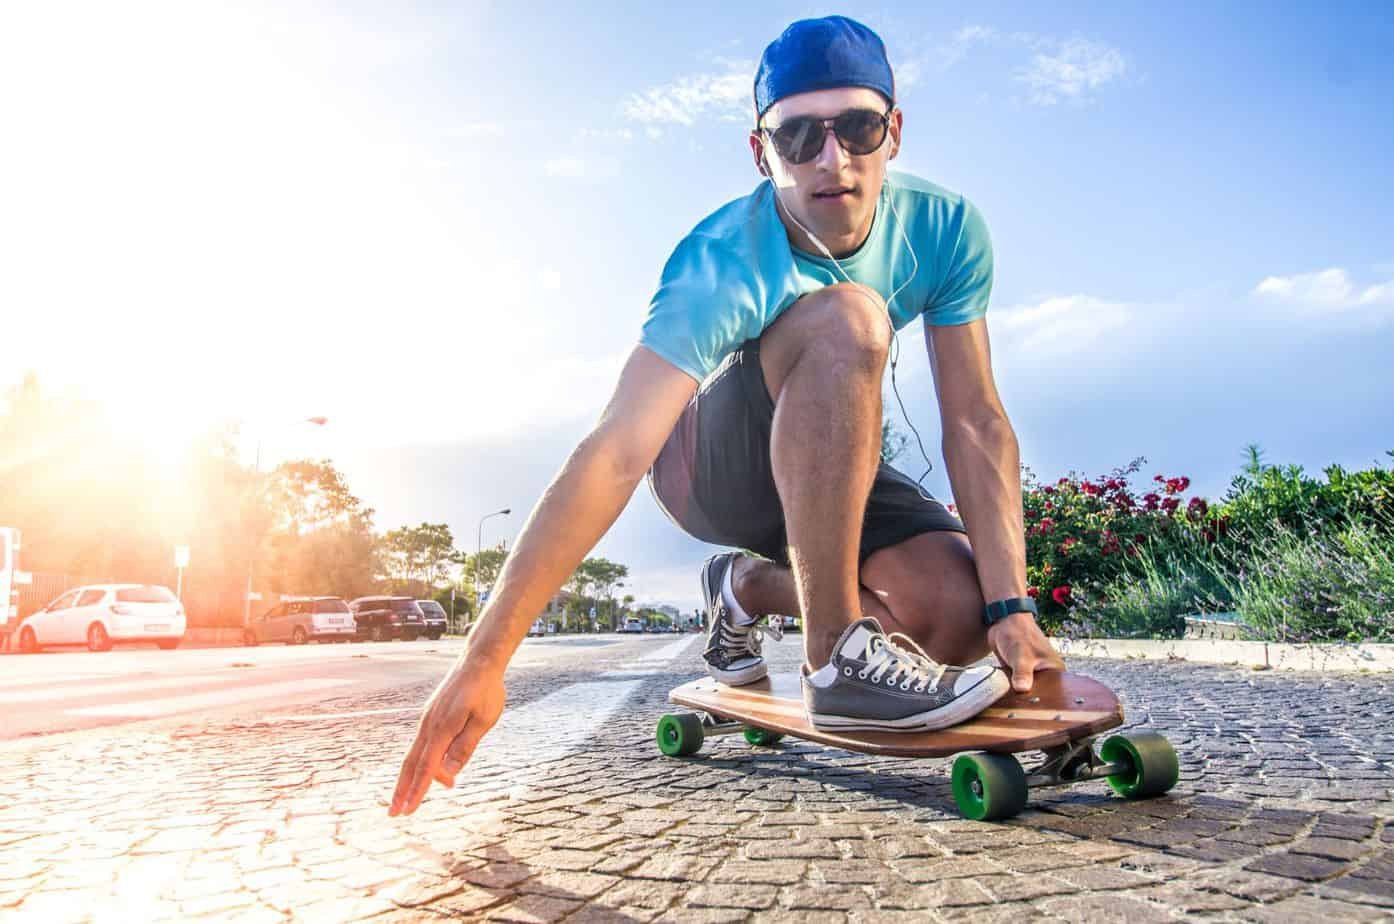 Are Longboards Good for Beginners?